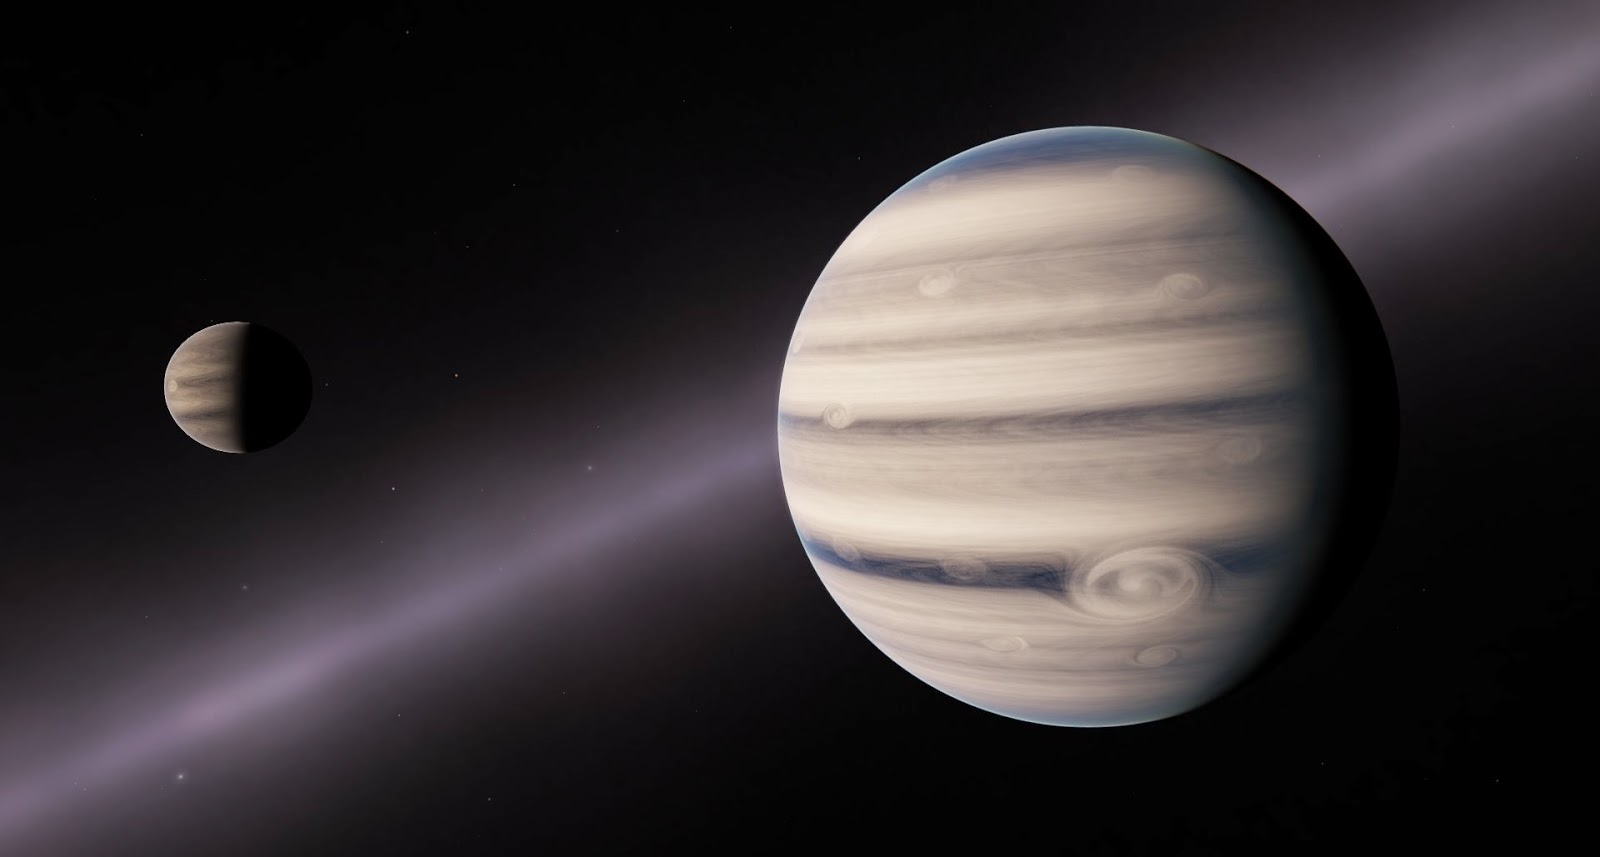 Beyond Earthly Skies: Formation of Binary Giant Planets